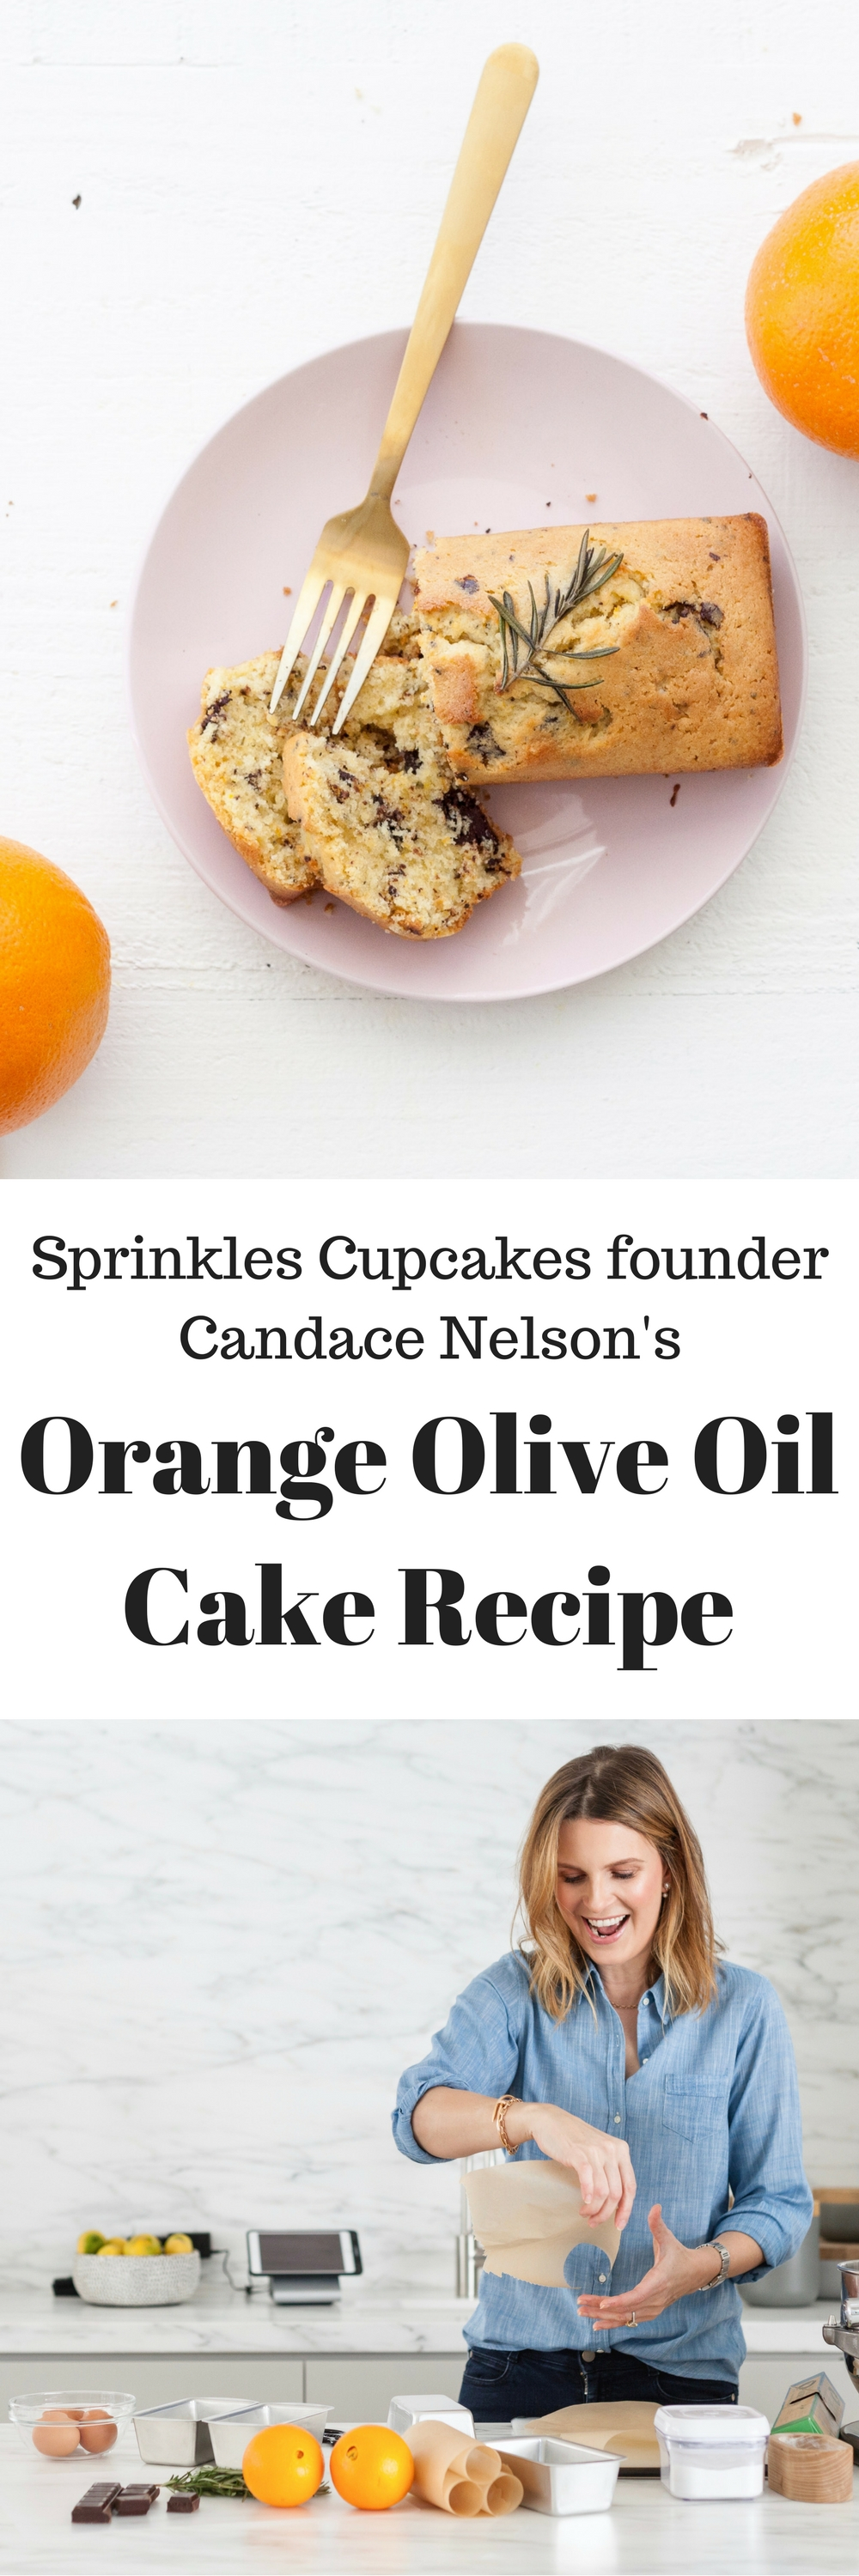 Sprinkles Cupcakes founder Candace Nelson's secret recipe for